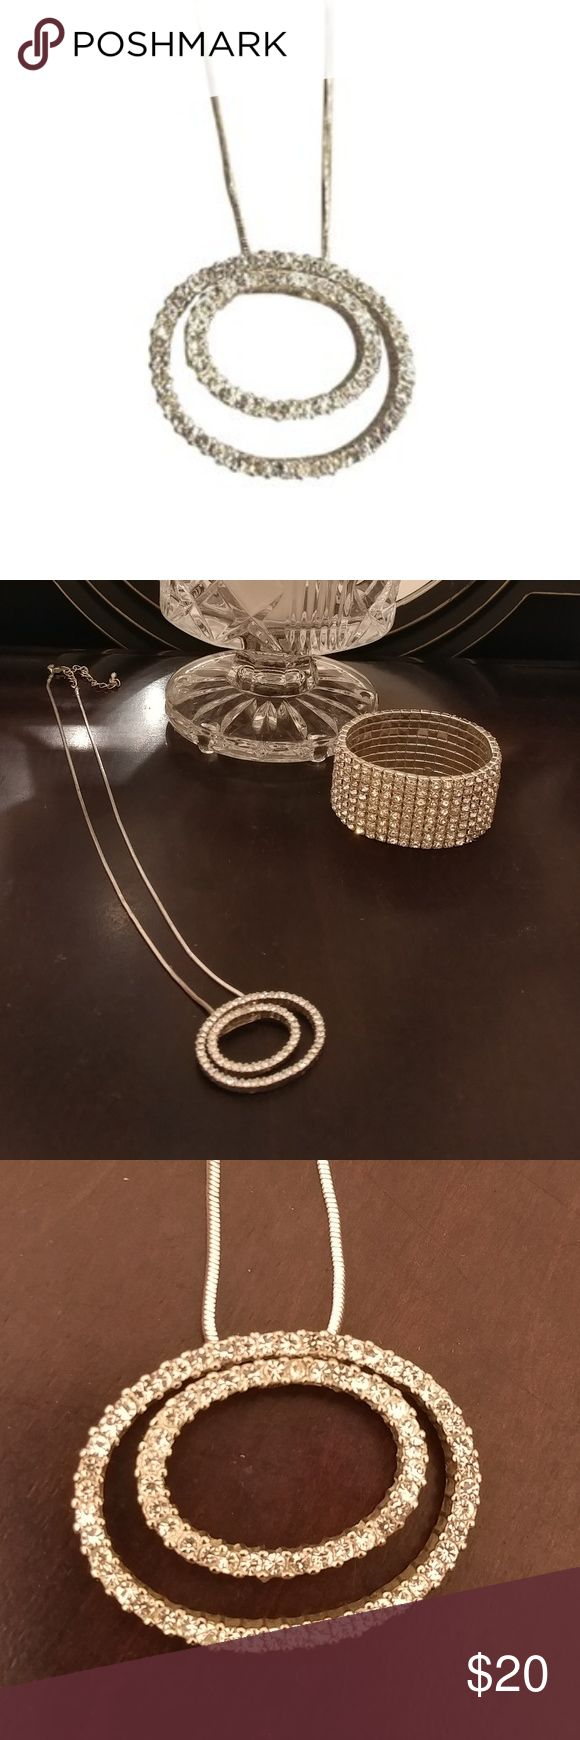 DUET Retired Premier Designs Necklace Silver plated with cut crystal accents. It is 17-19 inches long. Sold new for $54. Last in the 2008 catalog. In excellant used condition. Premier Designs Jewelry Necklaces